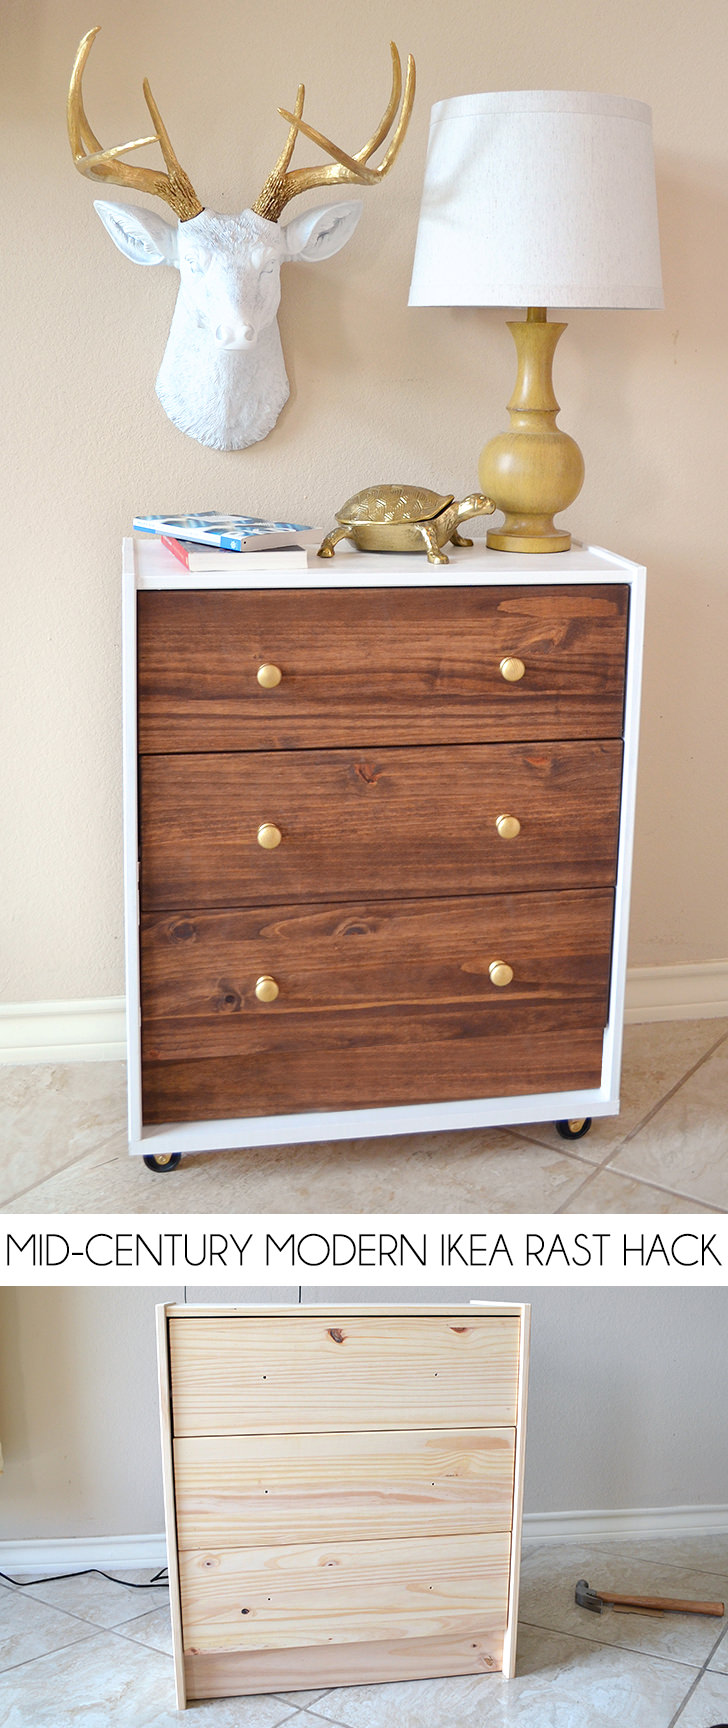 This IKEA Rast dresser just needed a little paint and wood stain to become a gorgeous statement piece